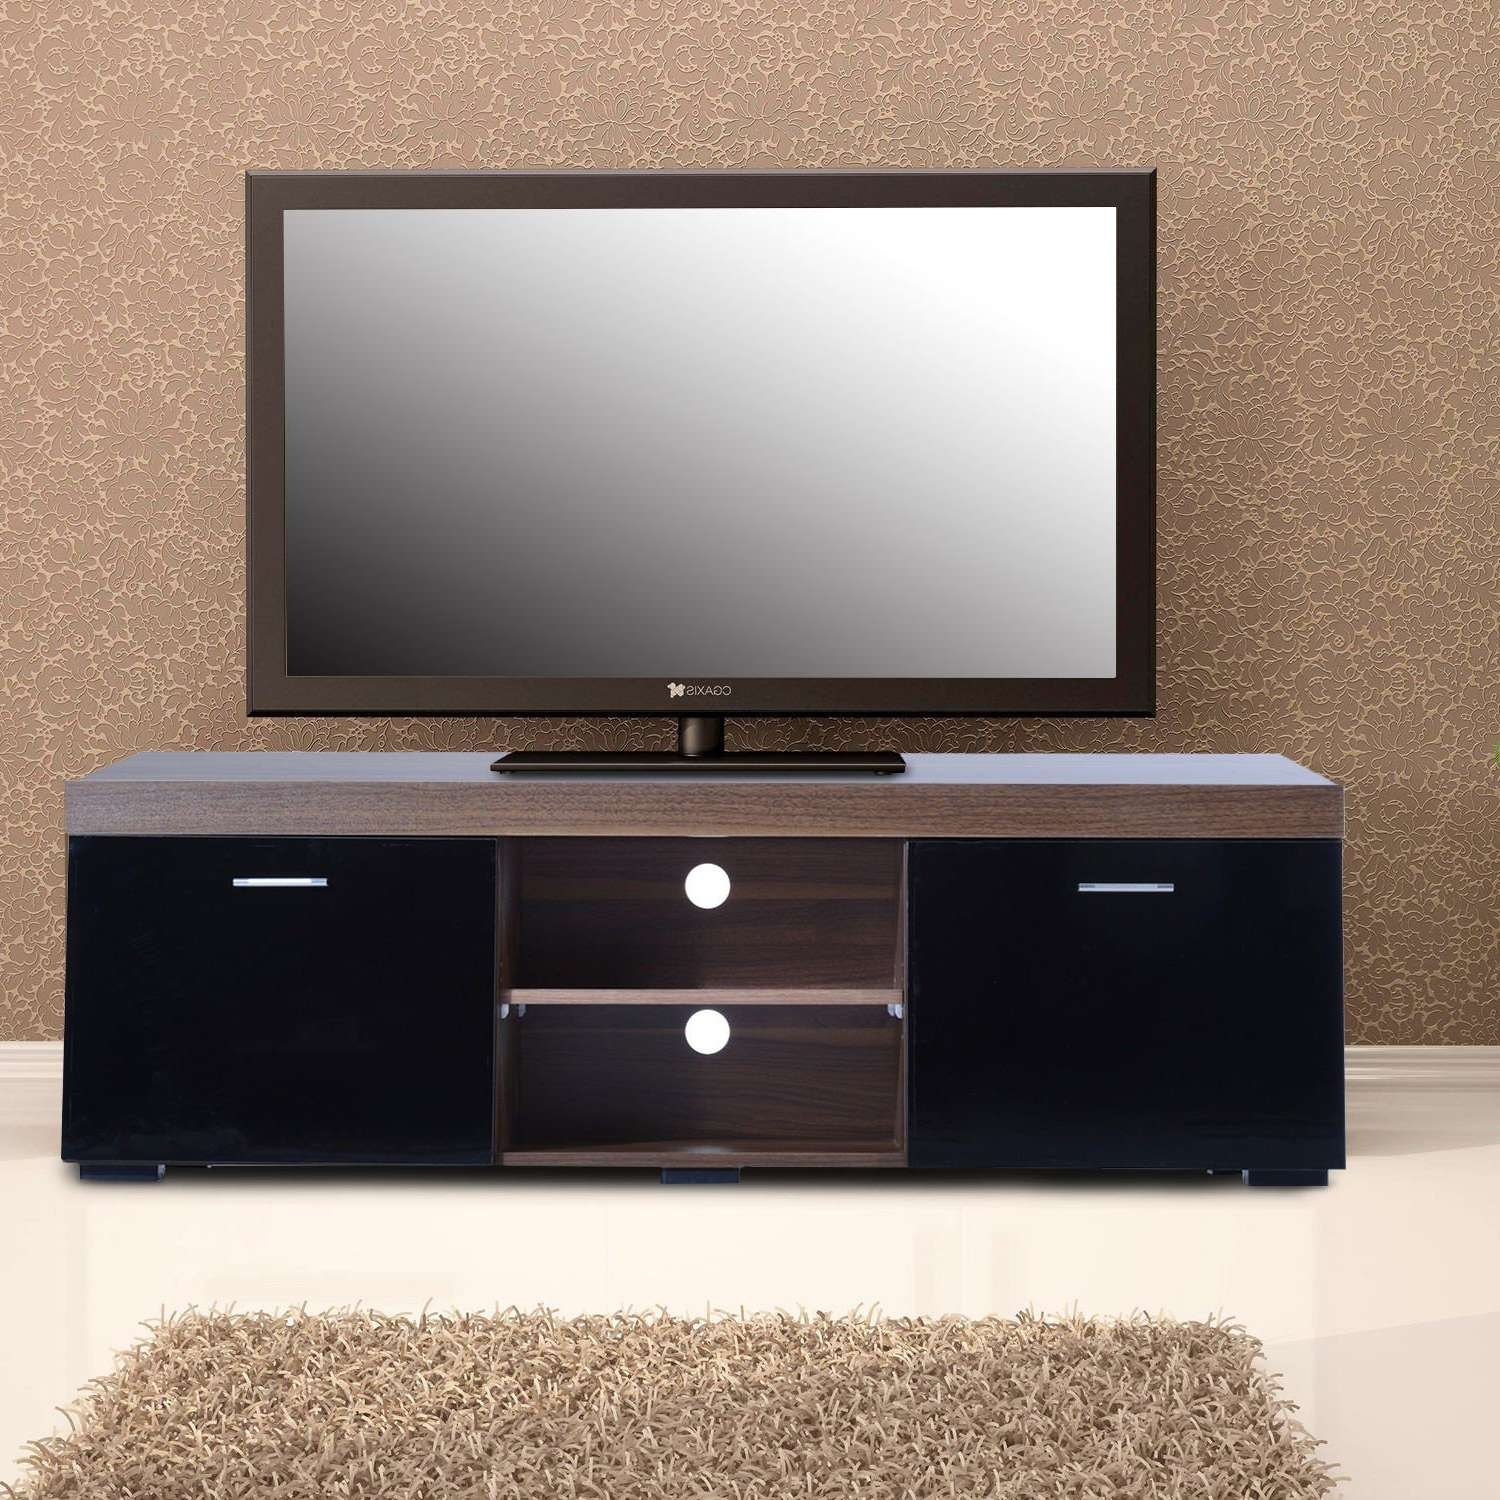 Tv Stand Storage Cabinet W/ Shelves Walnut/black Within Tv Cabinets With Storage (View 18 of 20)